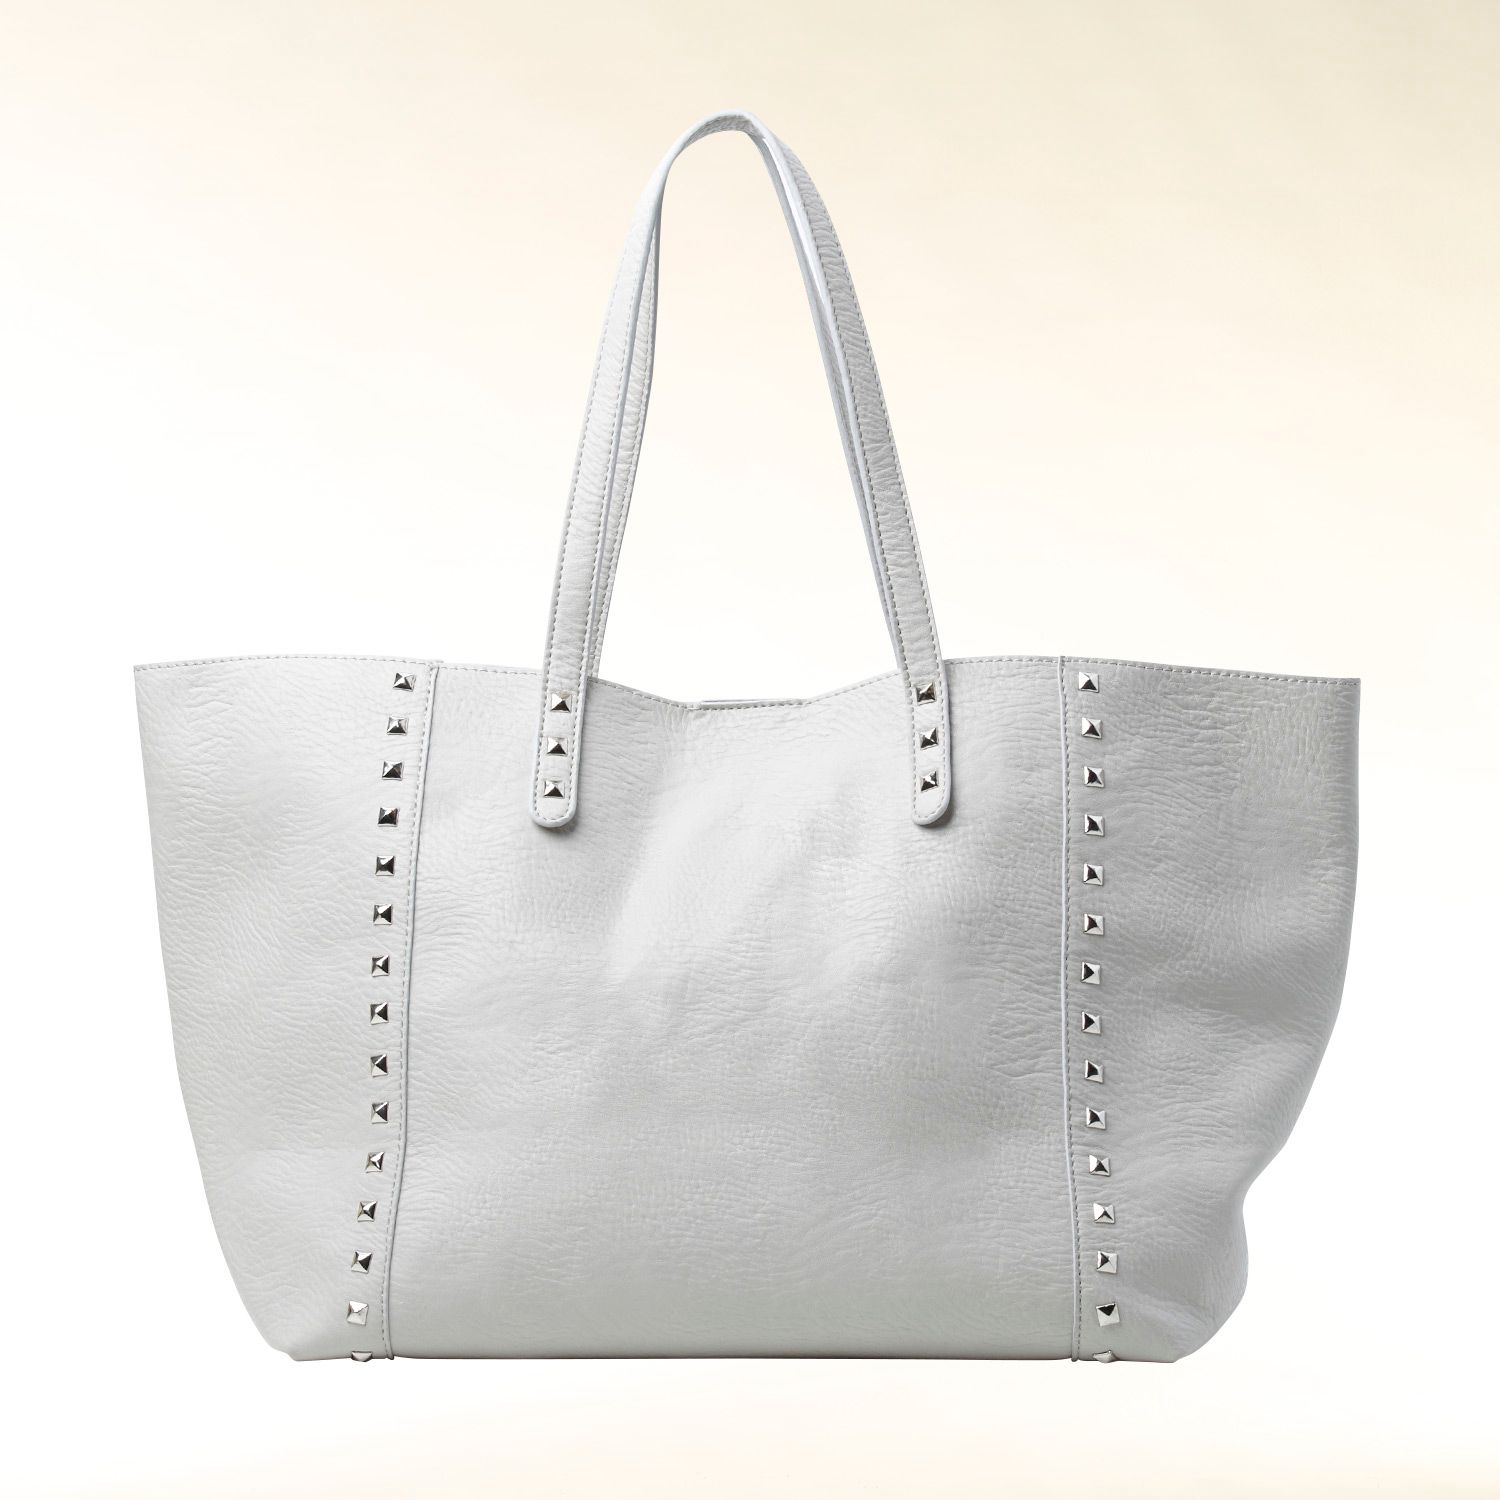 Stud embellished shopper